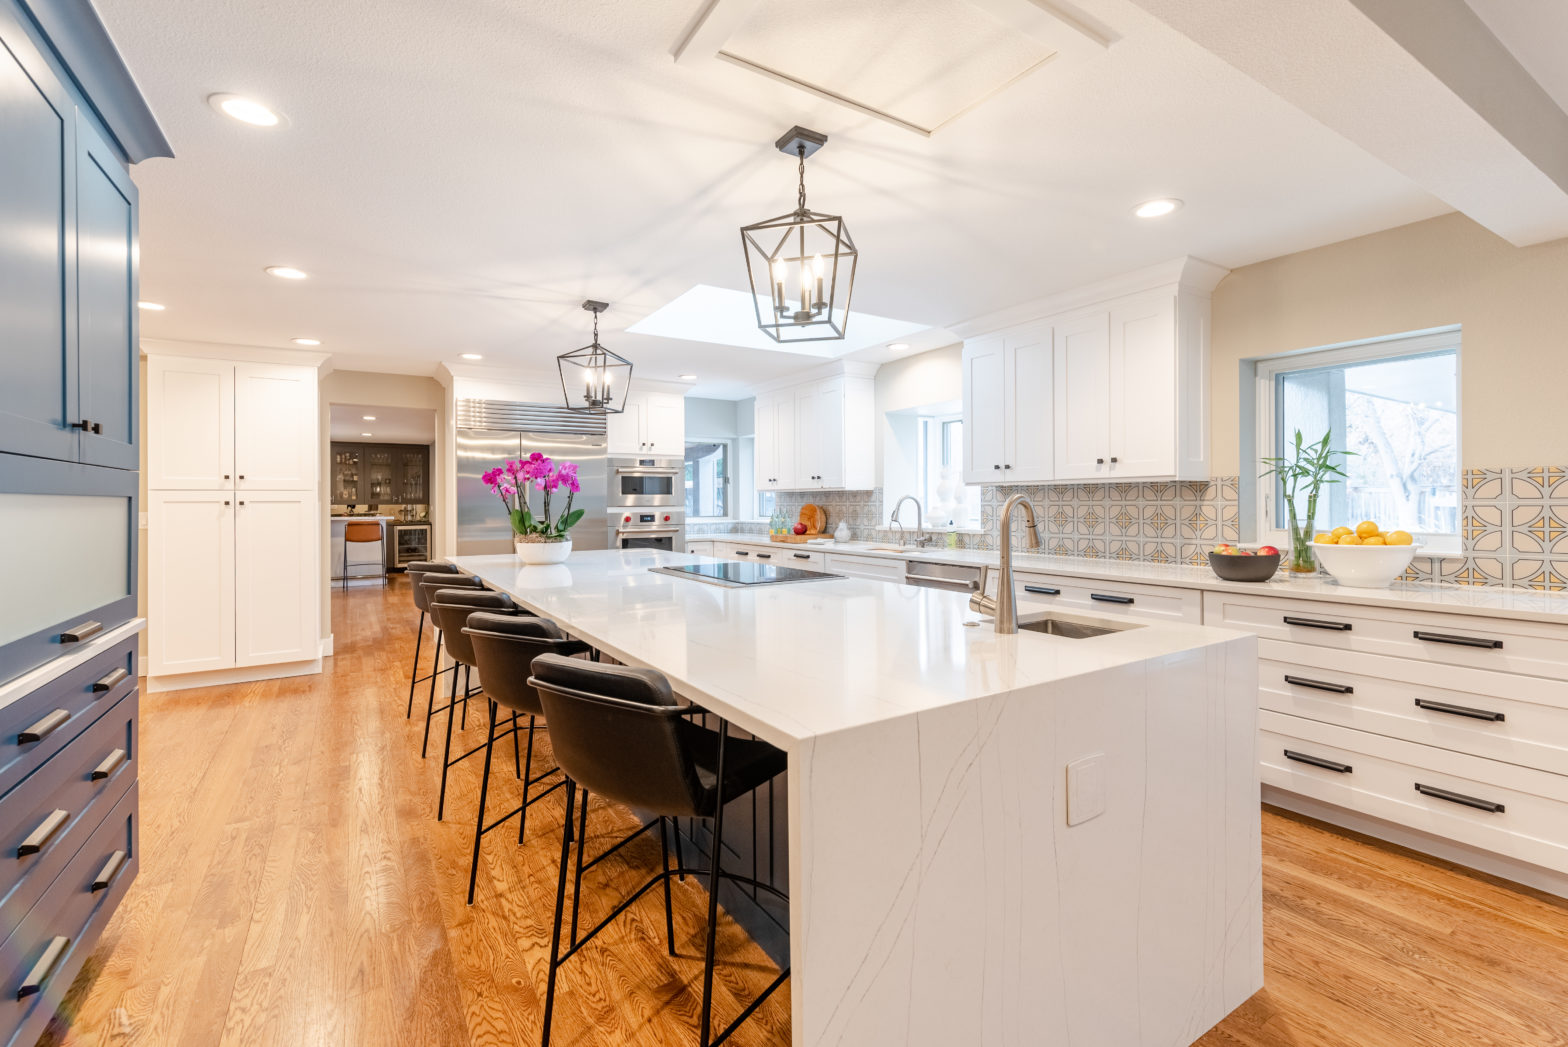 open-space kitchen with white counter tops and blue cabinets